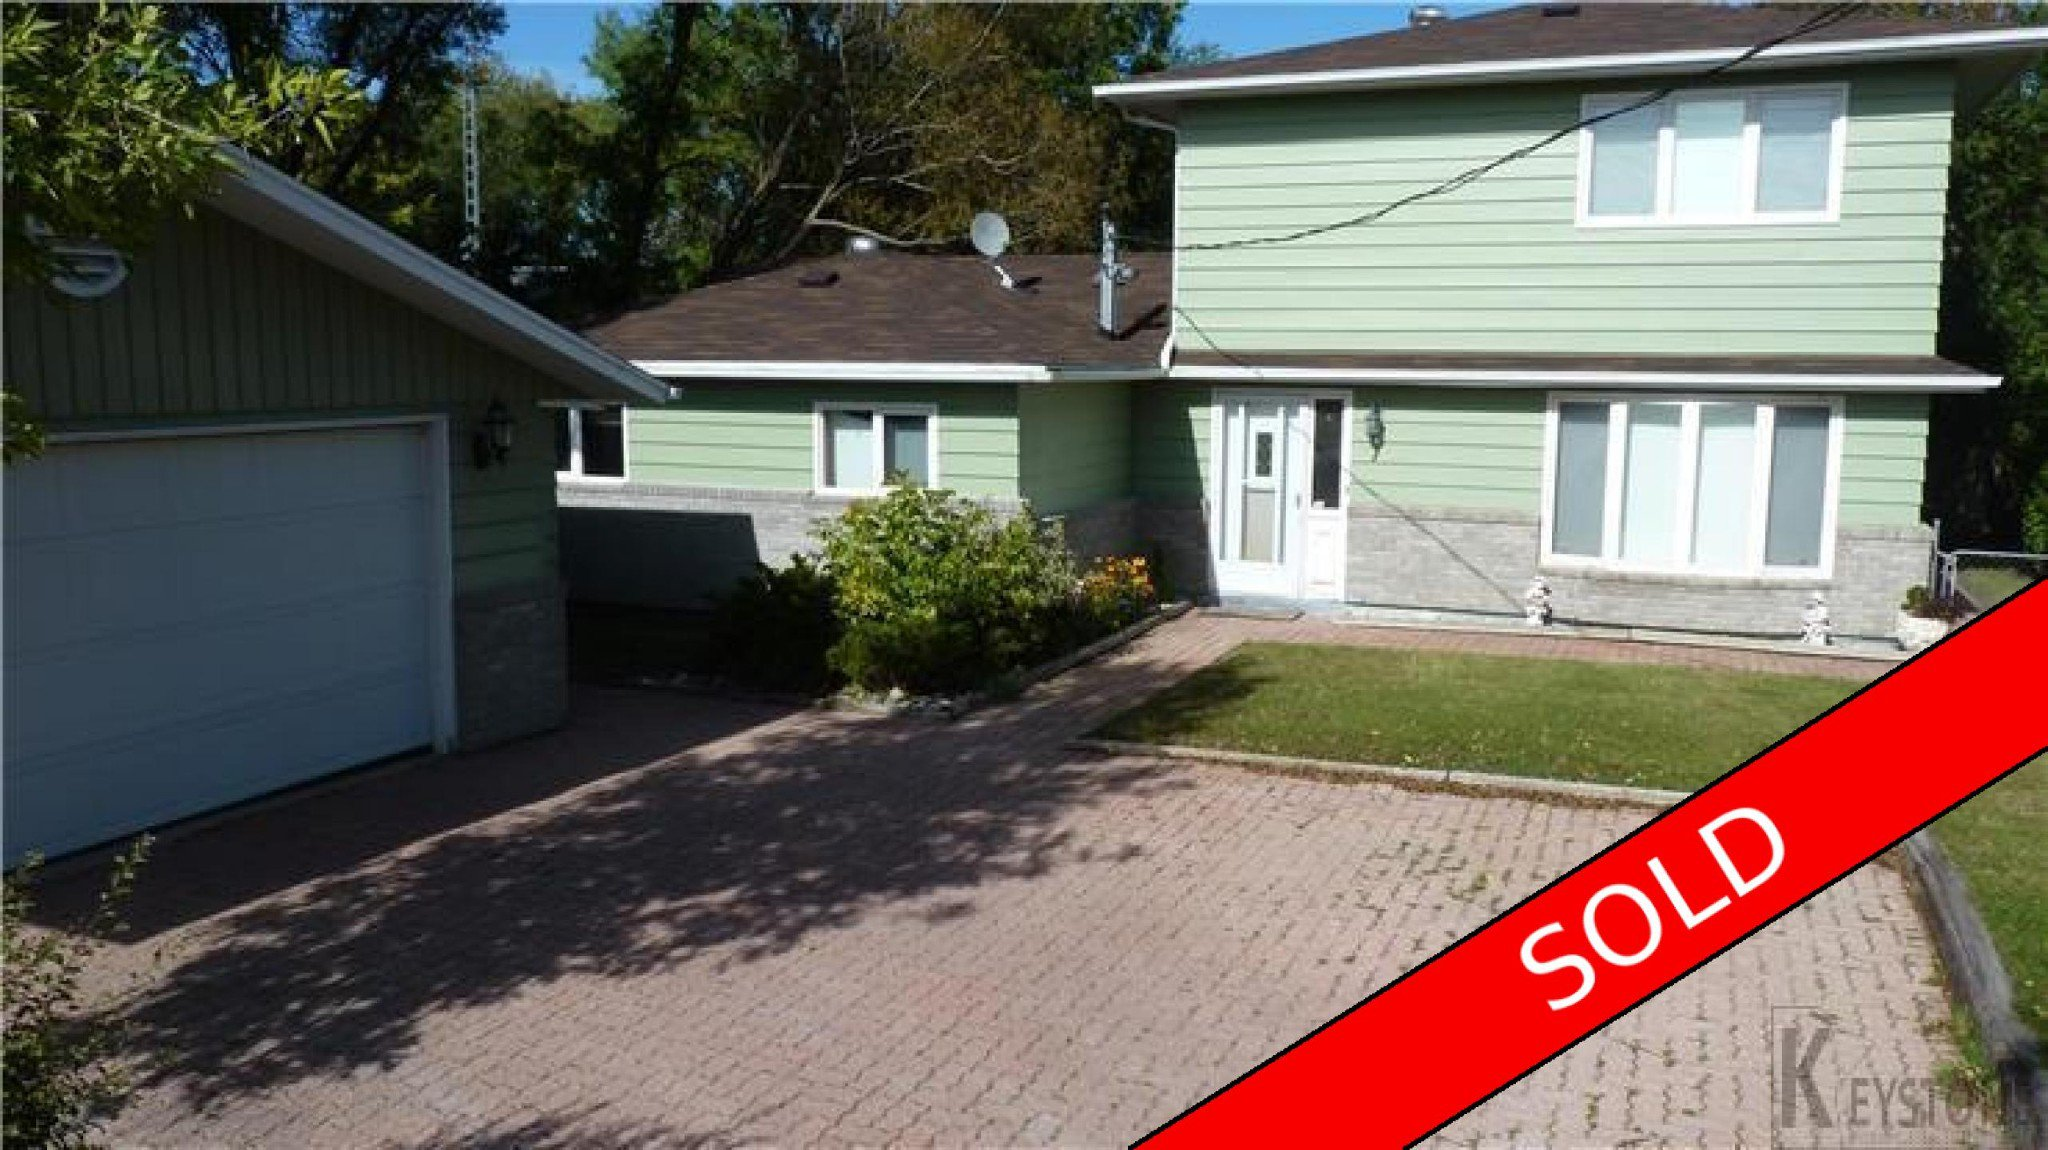 Main Photo:  in Petersfield, MB R0C2L0: House for sale : MLS®# 1724458